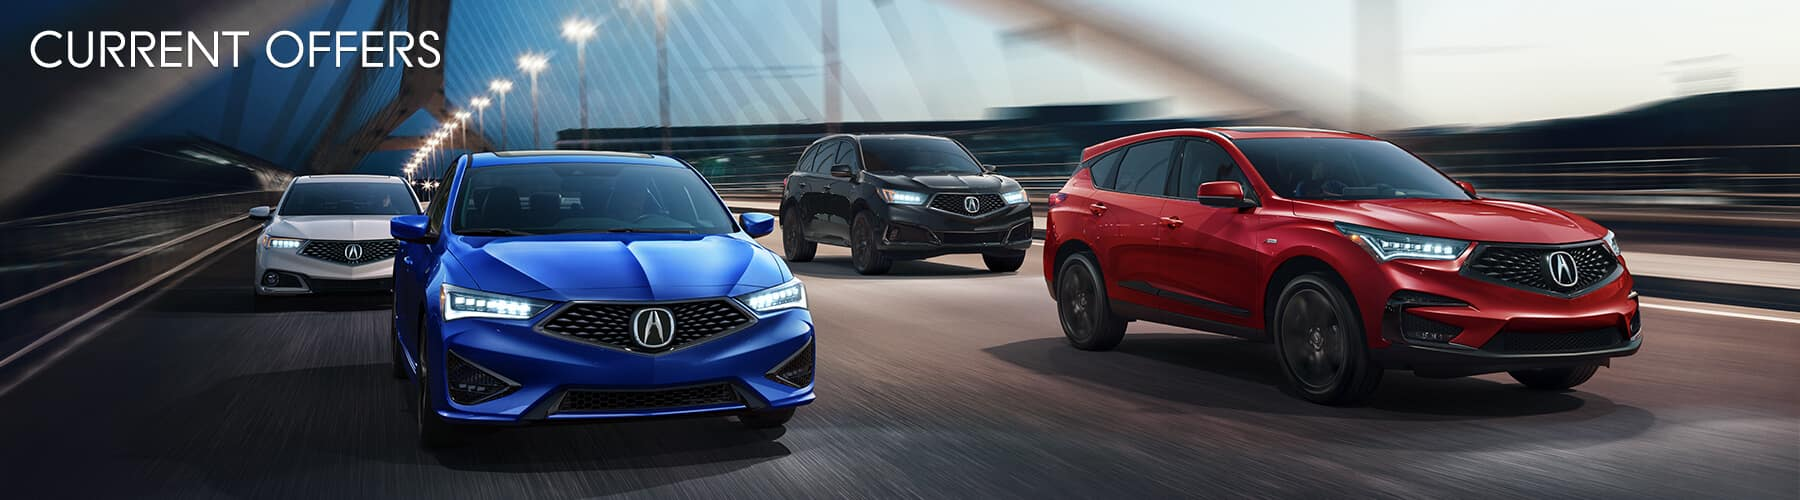 Puget Sound Acura Dealers Current Offers Banner